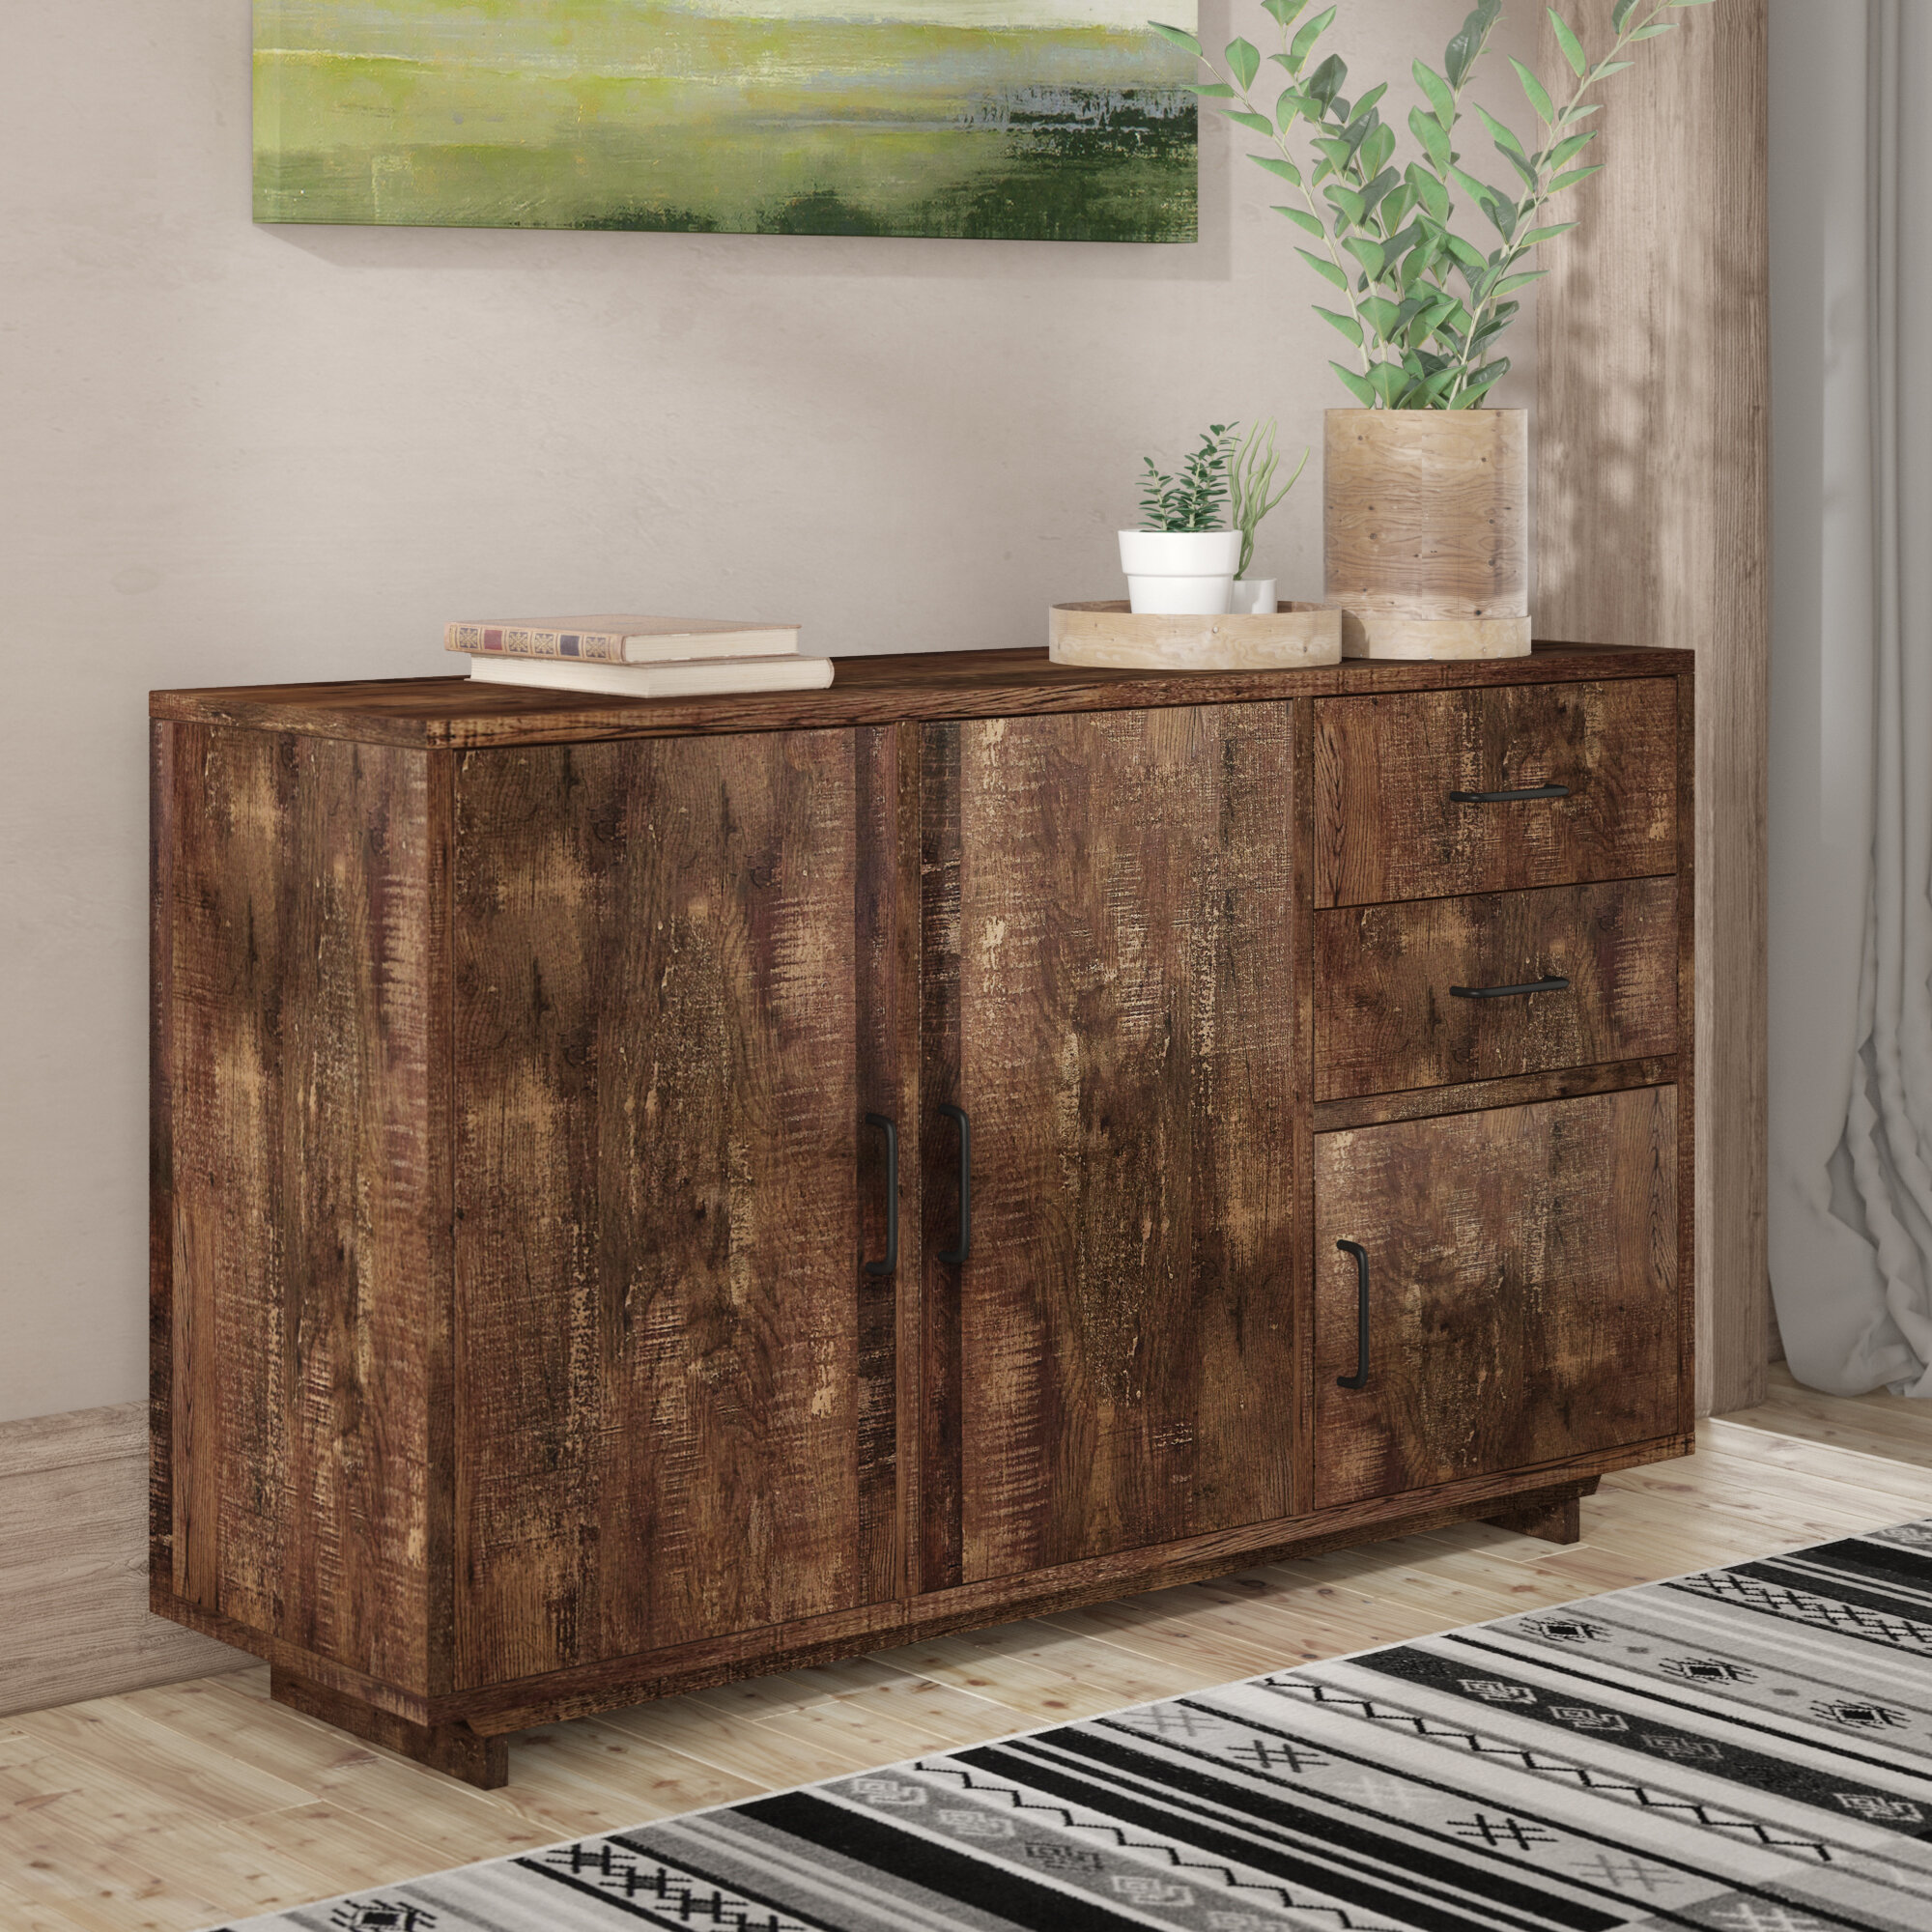 Sideboard Credenza Union Rustic Sideboards Buffets You Ll Love In 2021 Wayfair